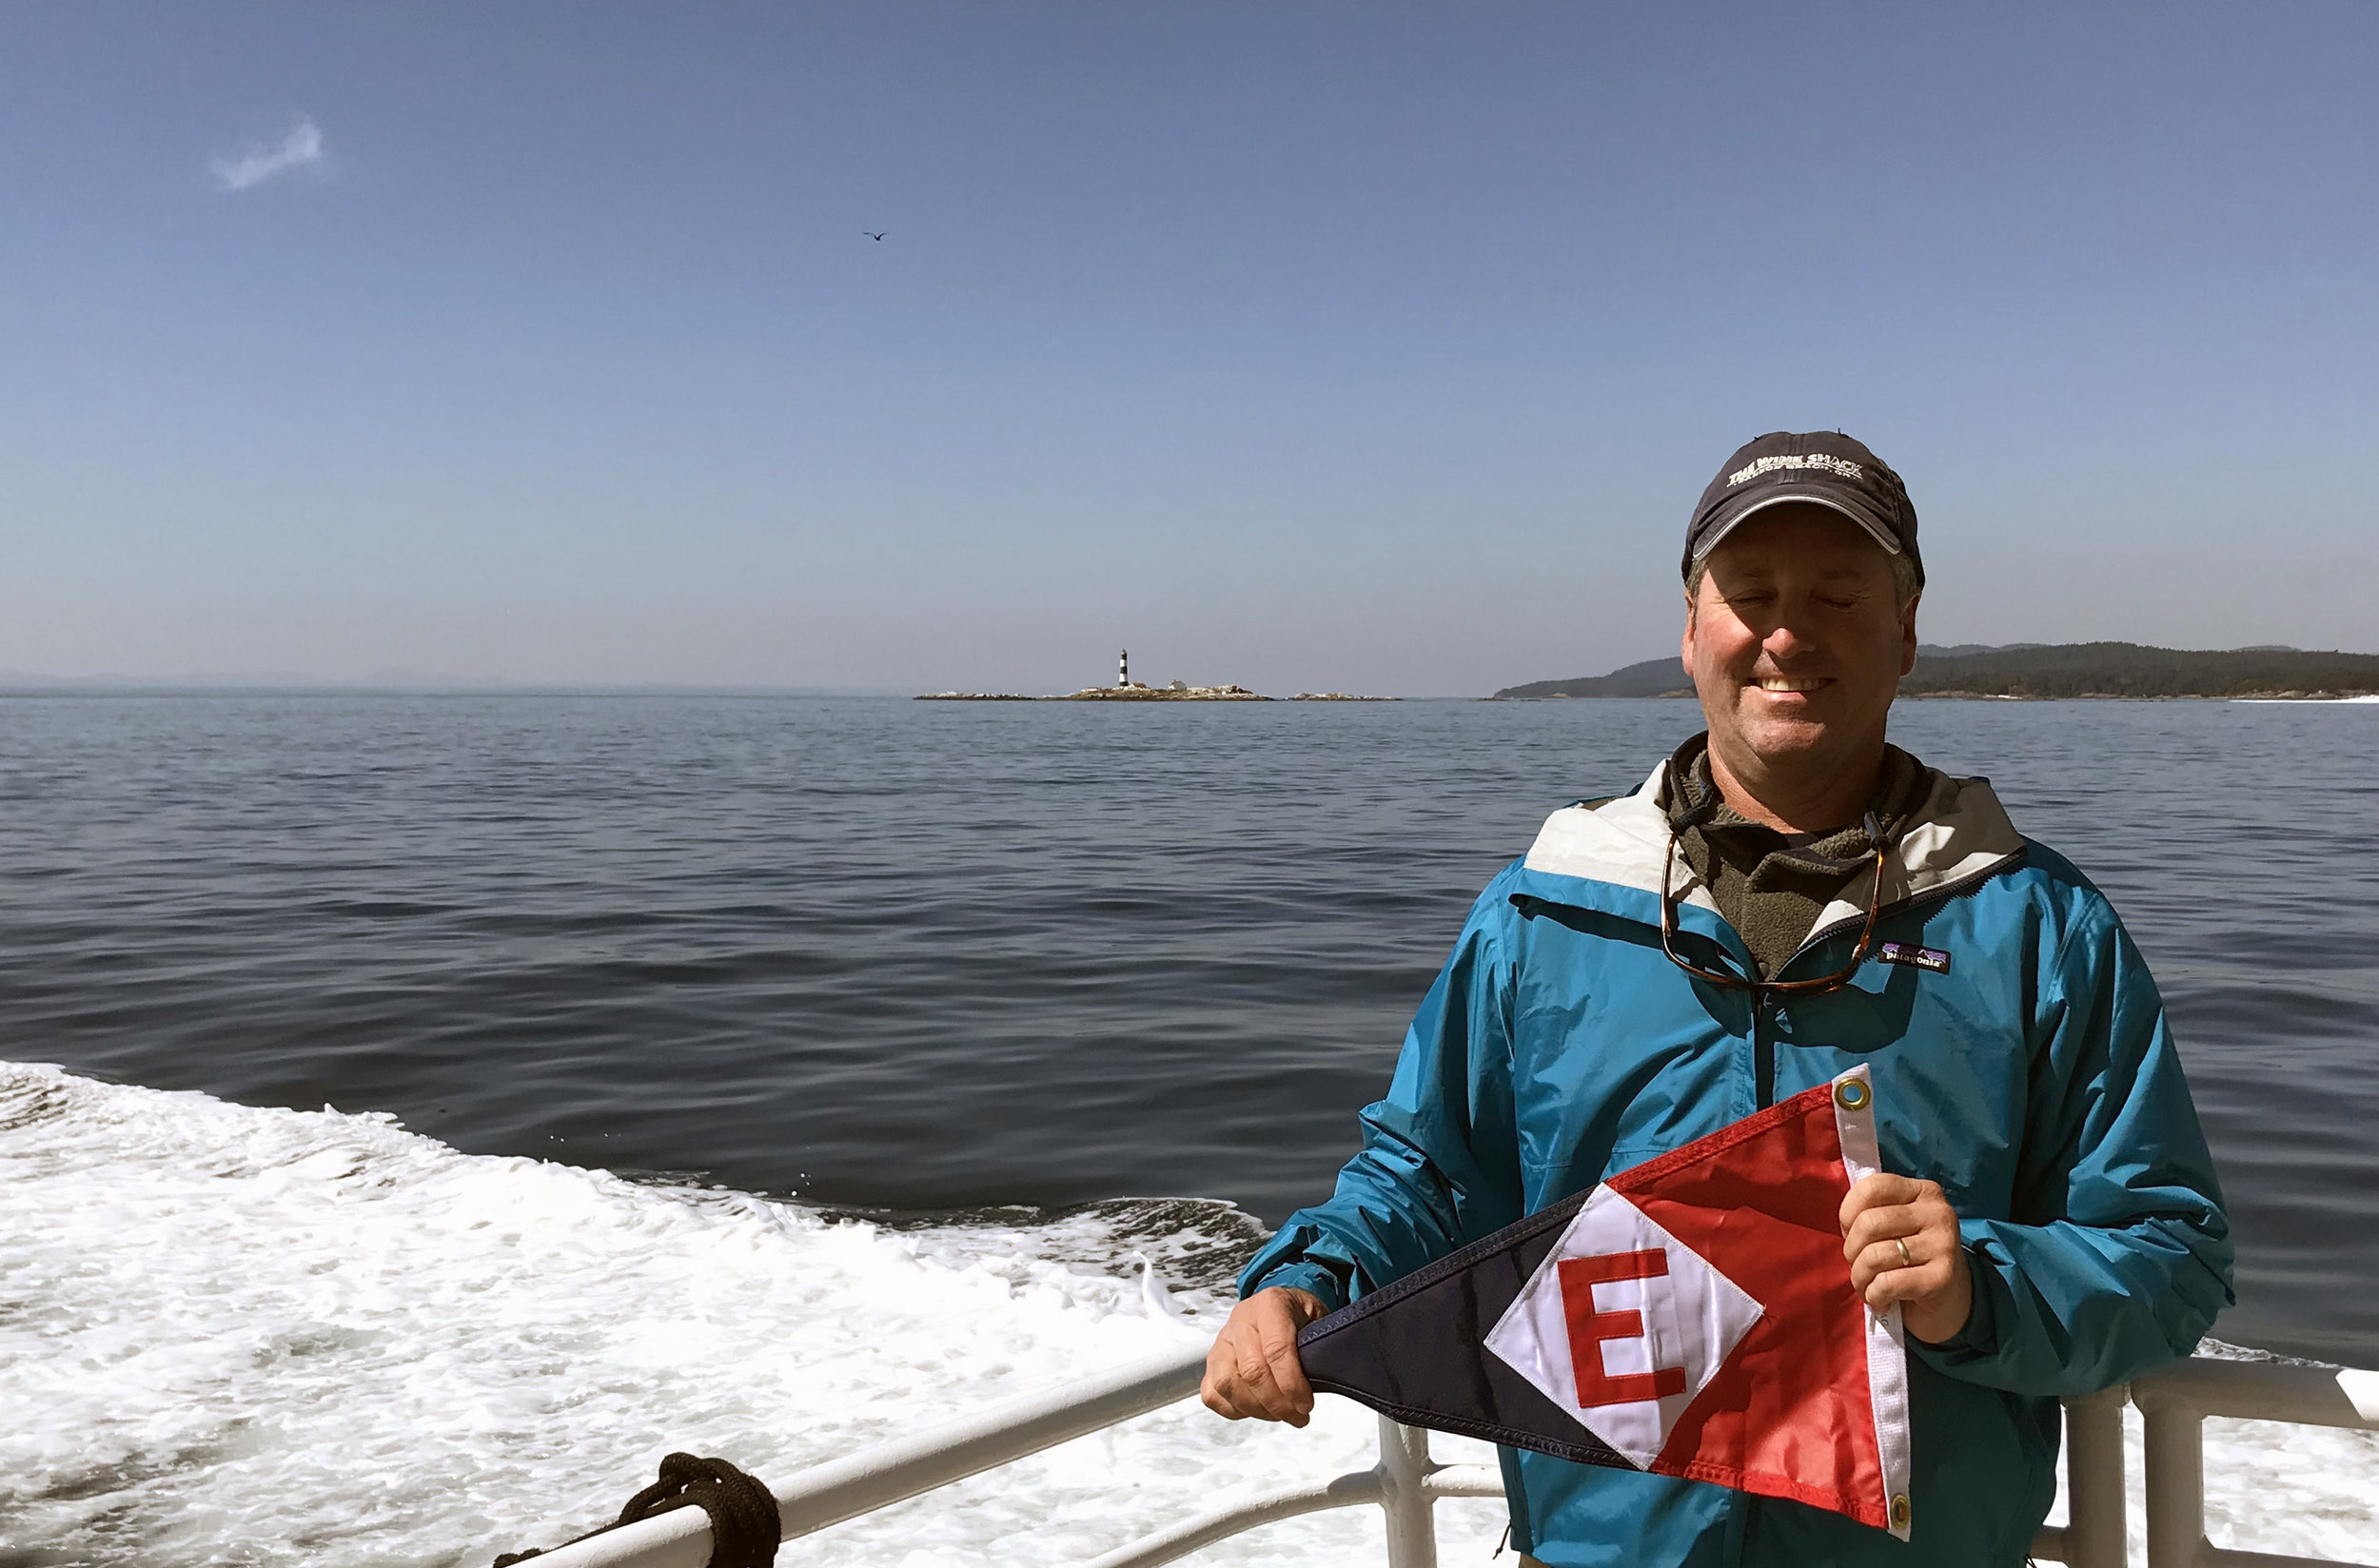 Jonathan Oberlander takes his burgee for a ride in the harbor in Victoria, BC